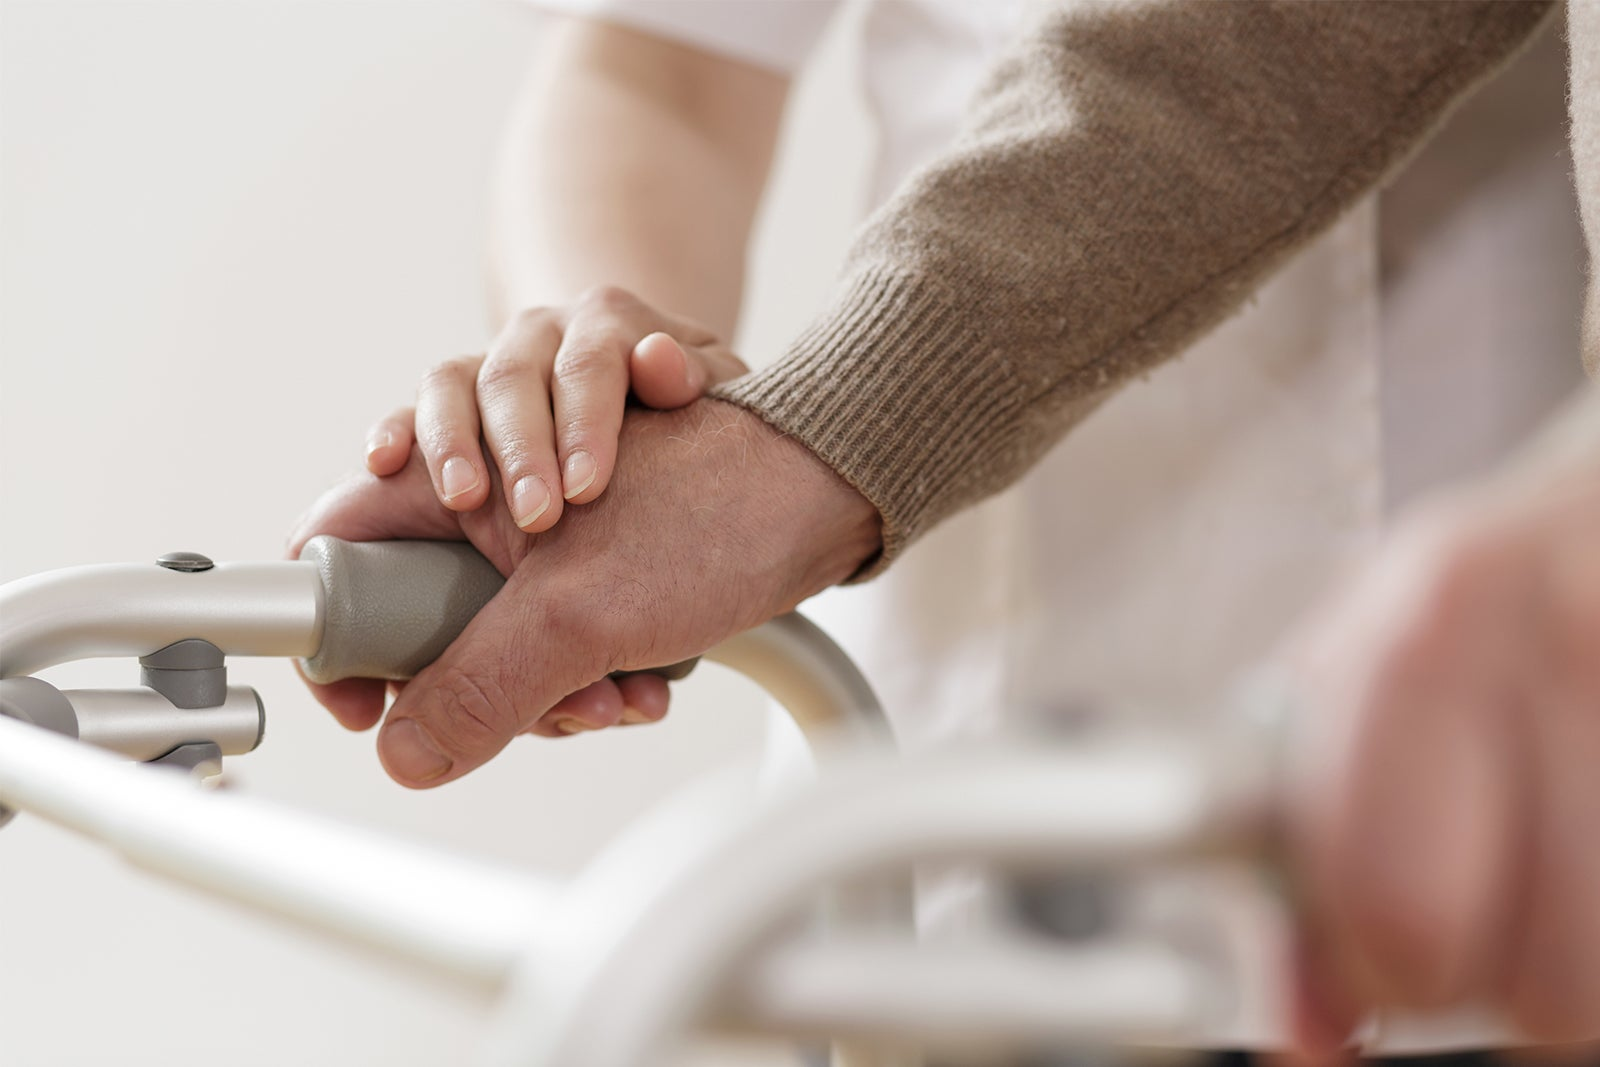 A caring hand placed on the hand of an older man who is holding onto his walker handles.